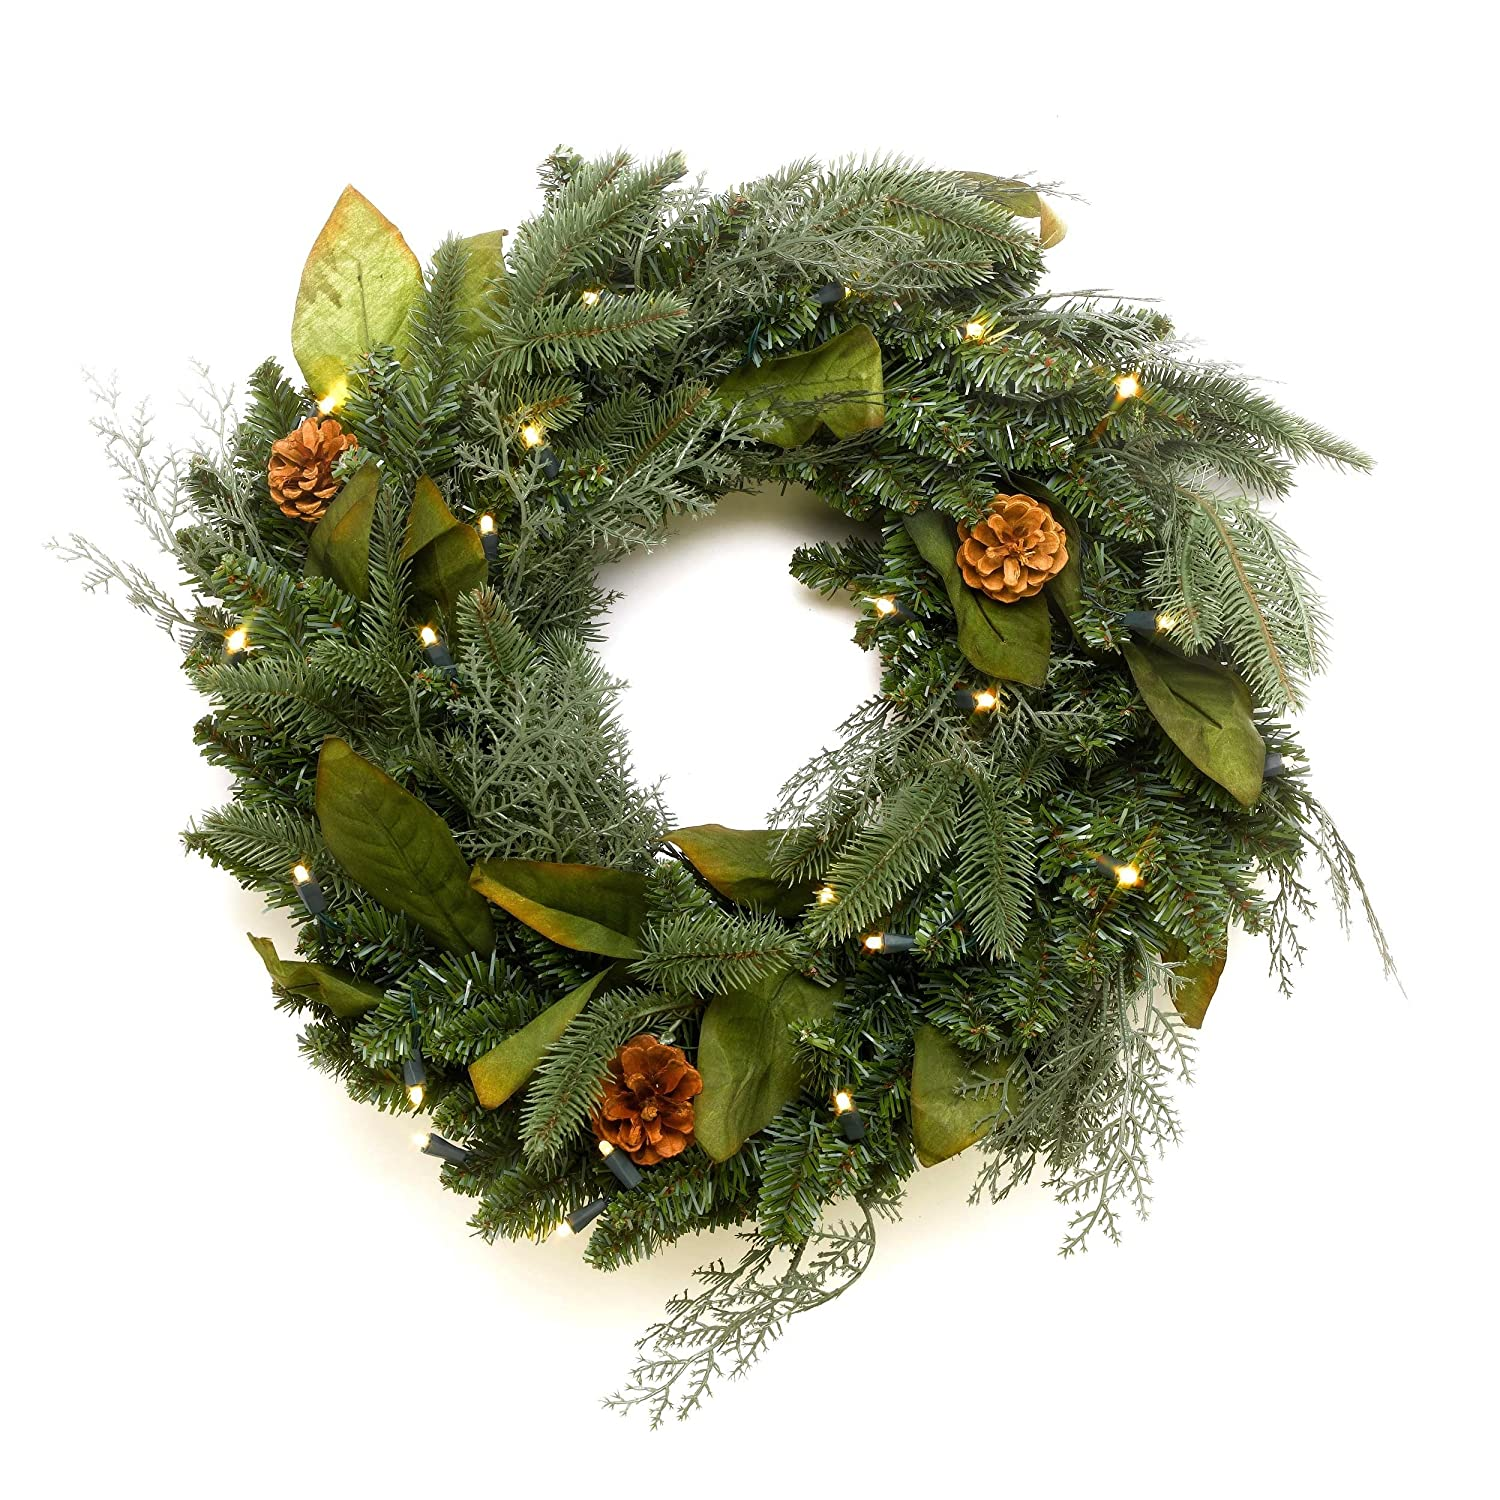 Bethlehem lights wreath battery operated - Gki Bethlehem Lighting 24 Gki Bethlehem Lighting 24 Green River Spruce Battery Operated Led Wreath